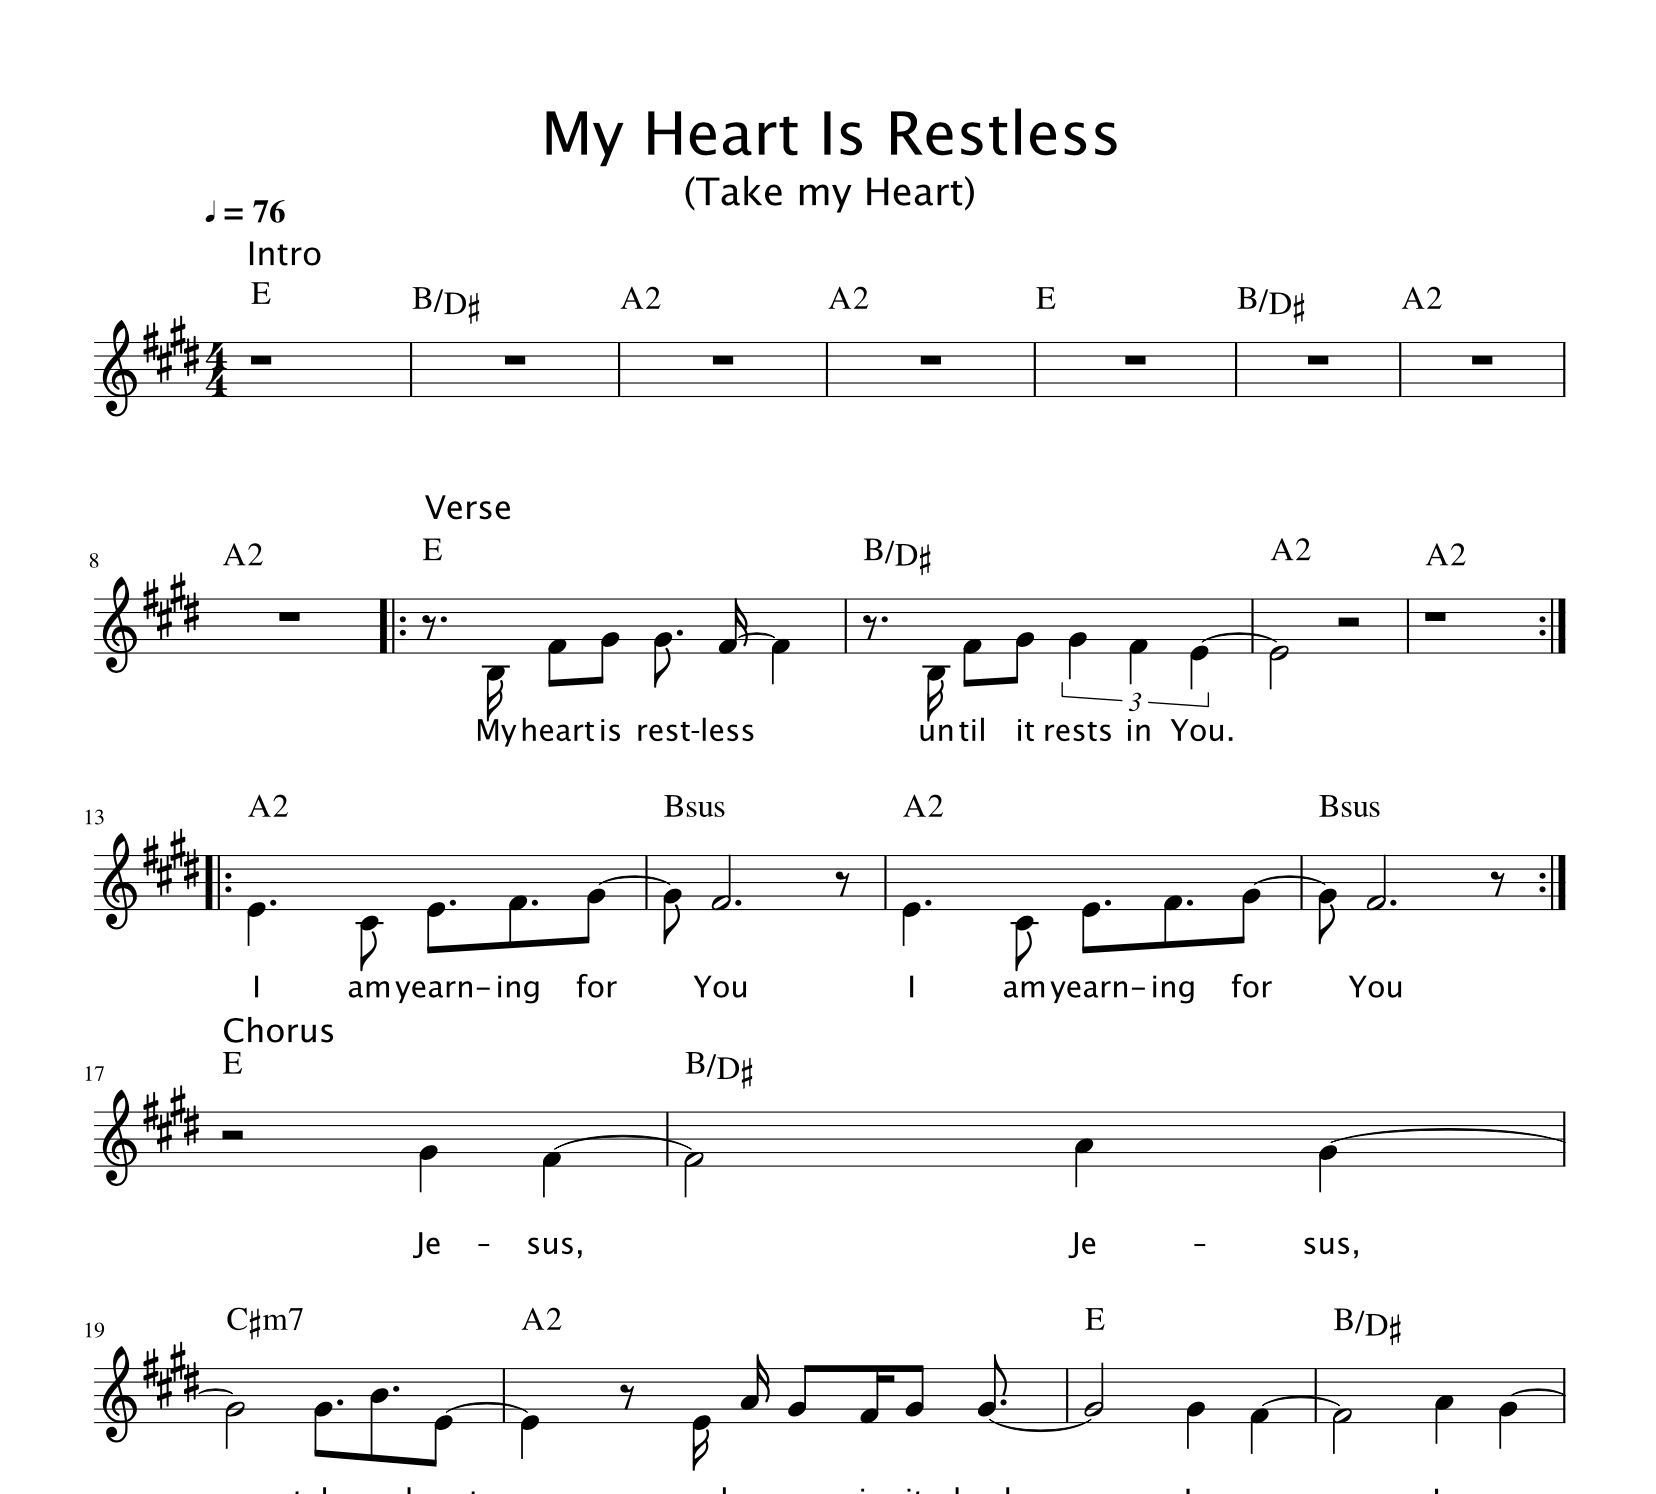 My Heart Is Restless (Take My Heart) - Sheet Music